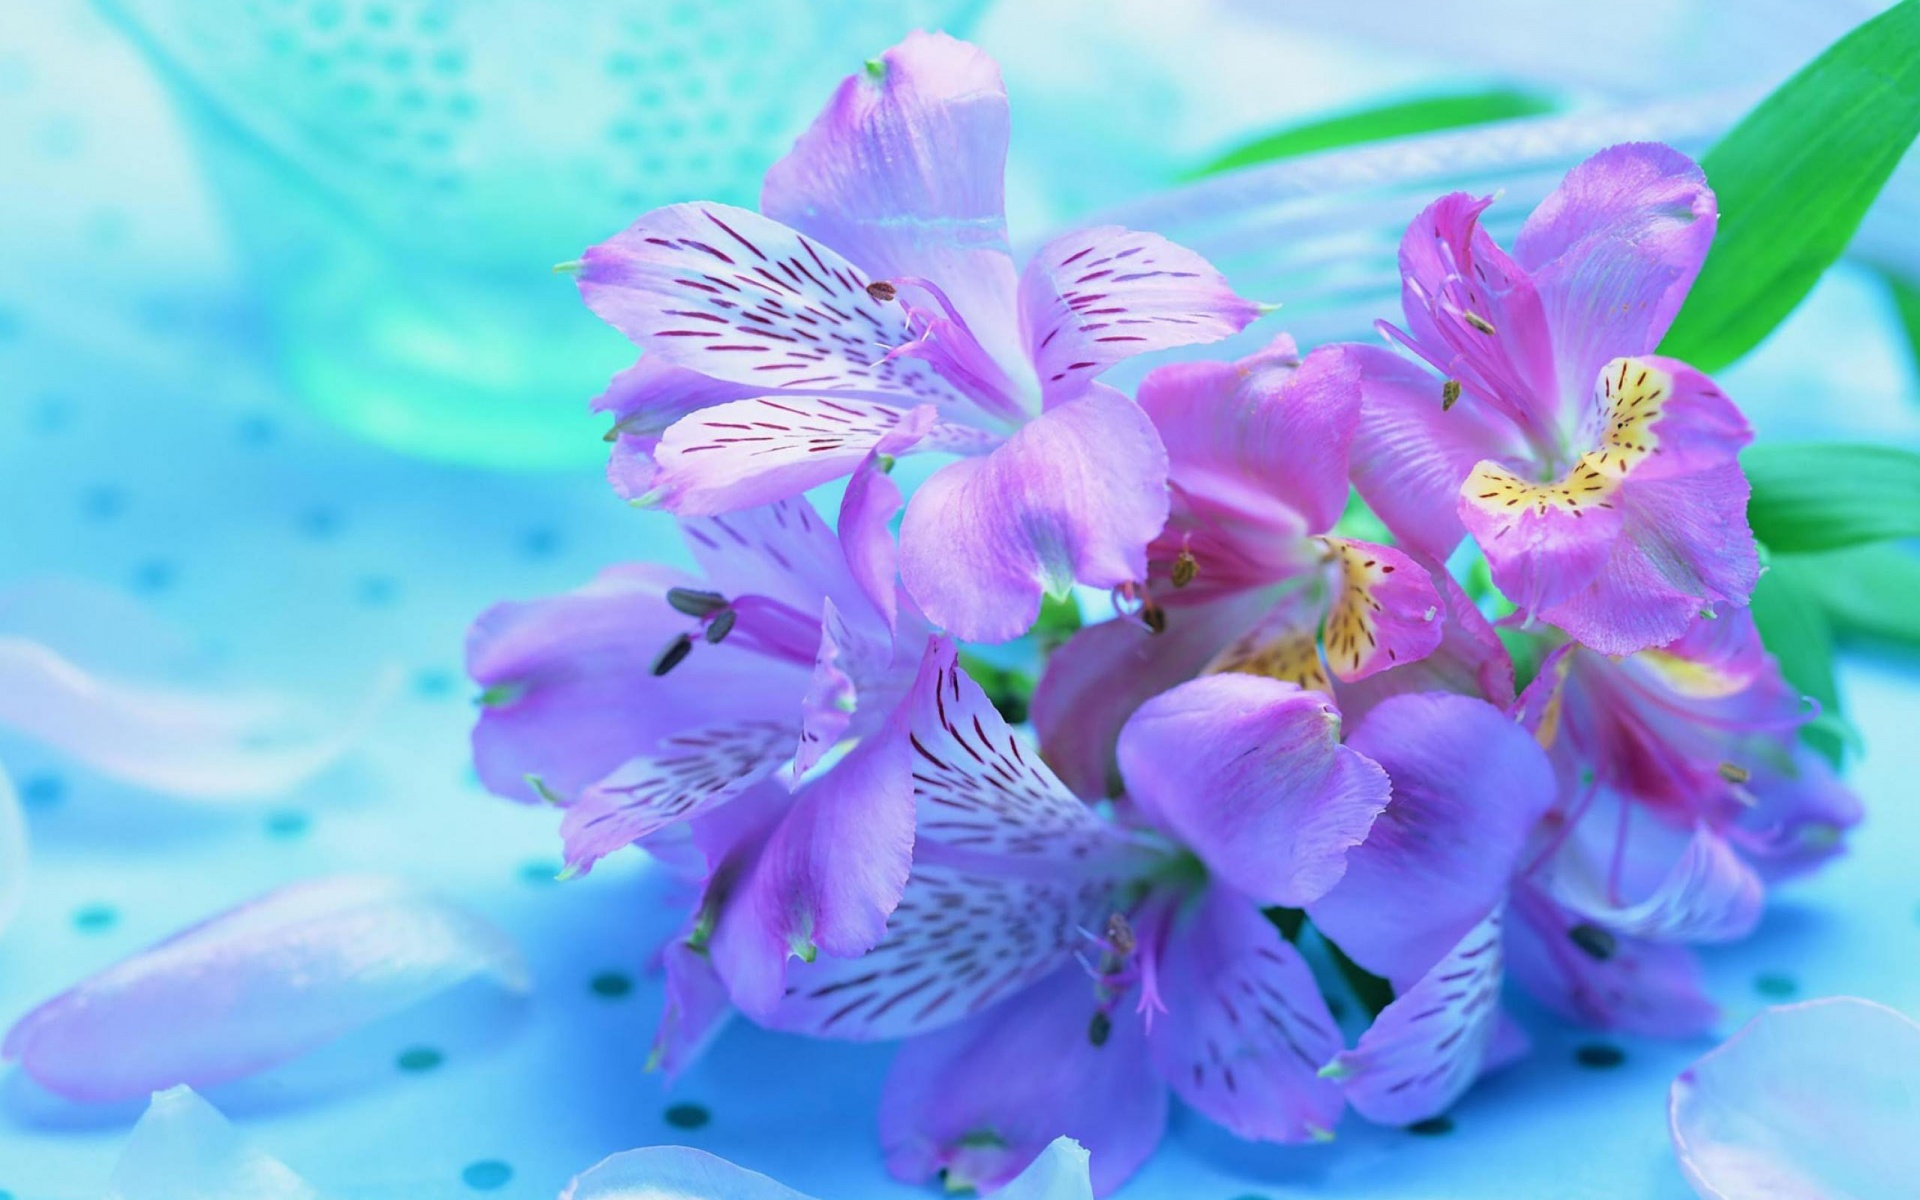 Beautiful Flower Images Hd Background Wallpaper 21 Thumb